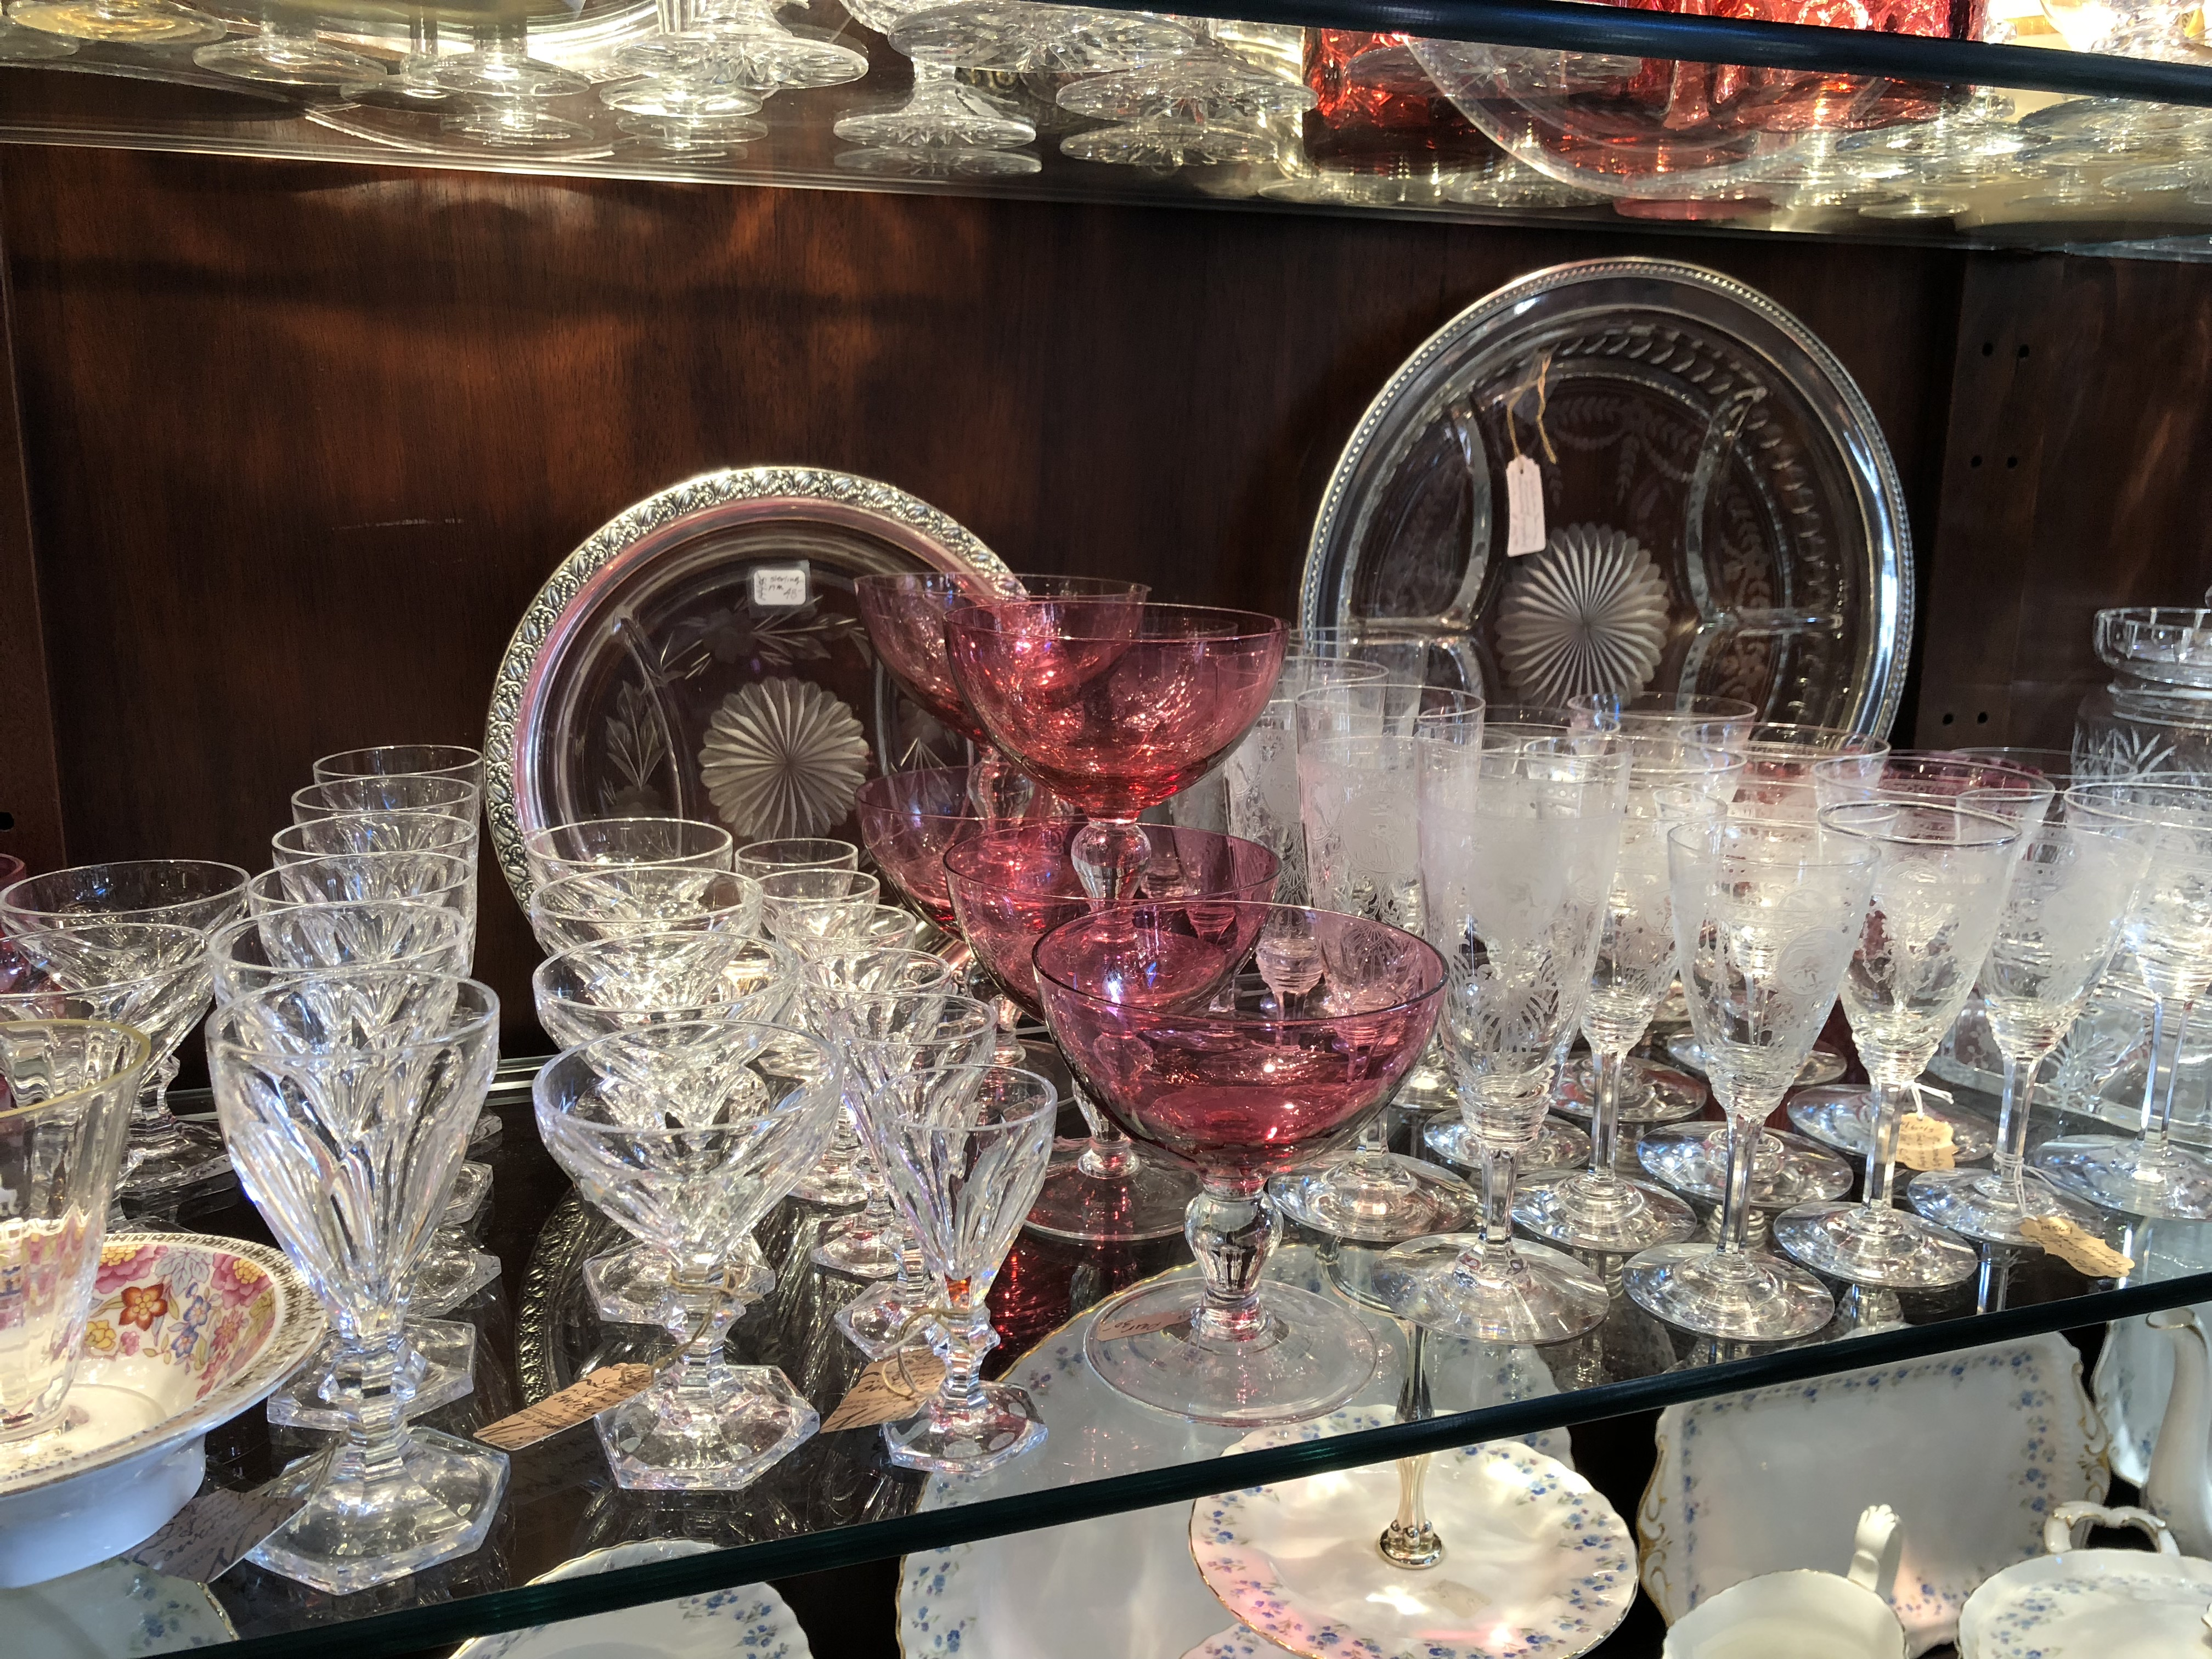 Crystal stemware & cranberry glass